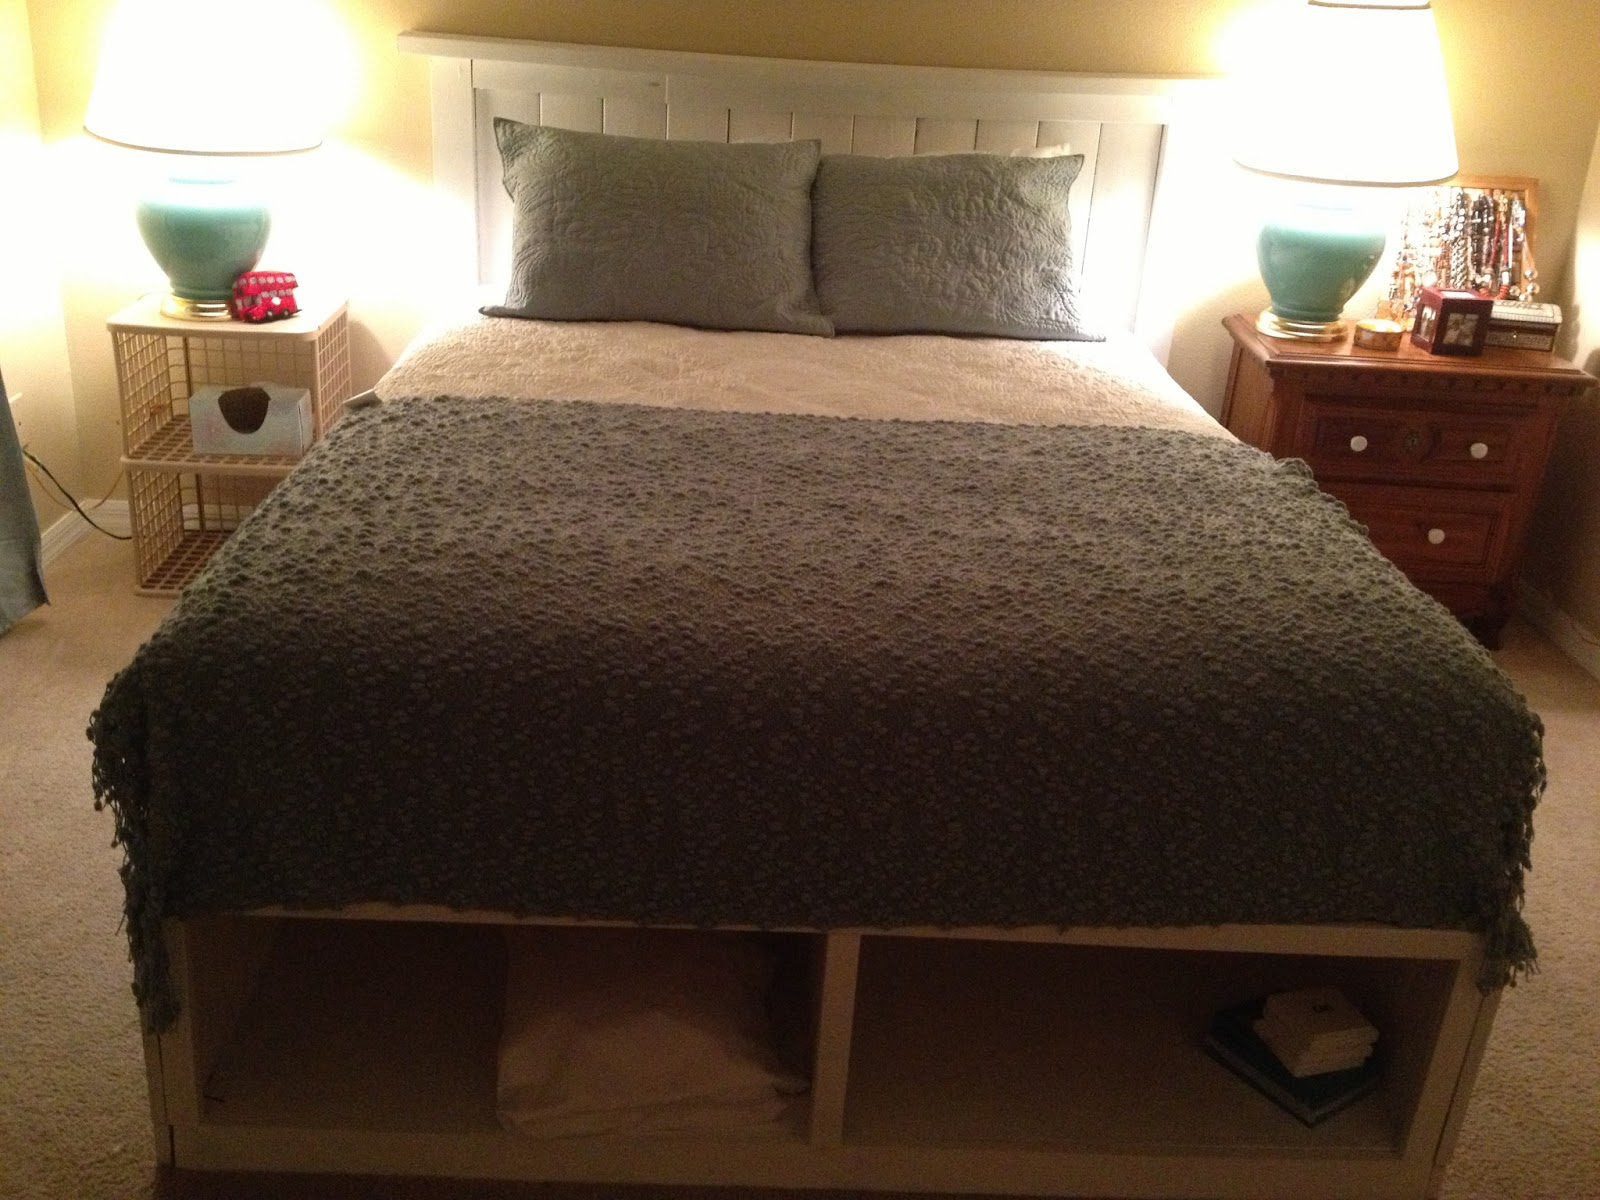 This Headboard For My Storage Bed Was Made From A Pallet And Some Stud  Scraps That I Scavenged From A Trash Pile On A Construction Site.